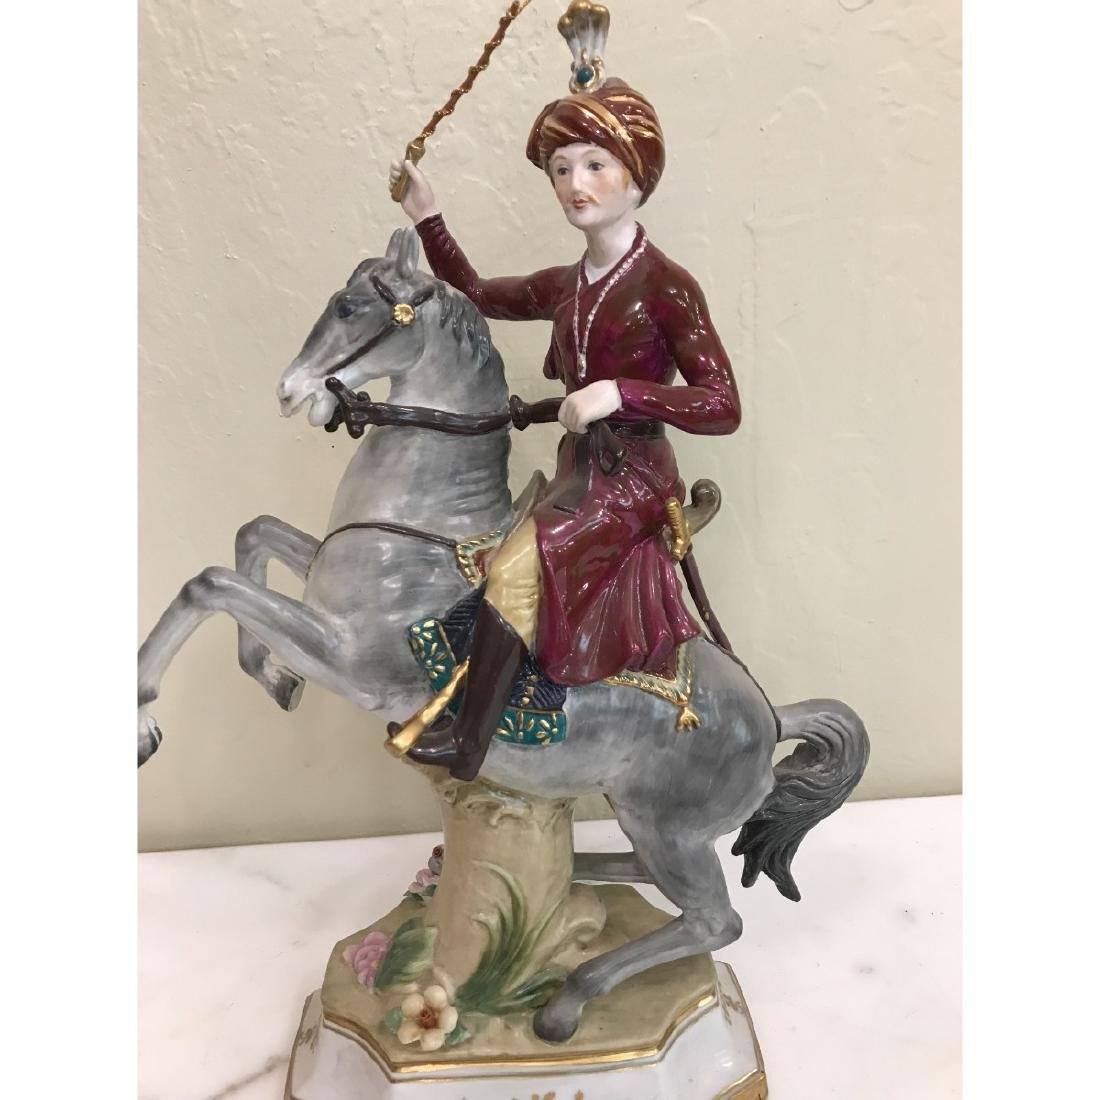 Porcelain Statue of Soldier on Horse